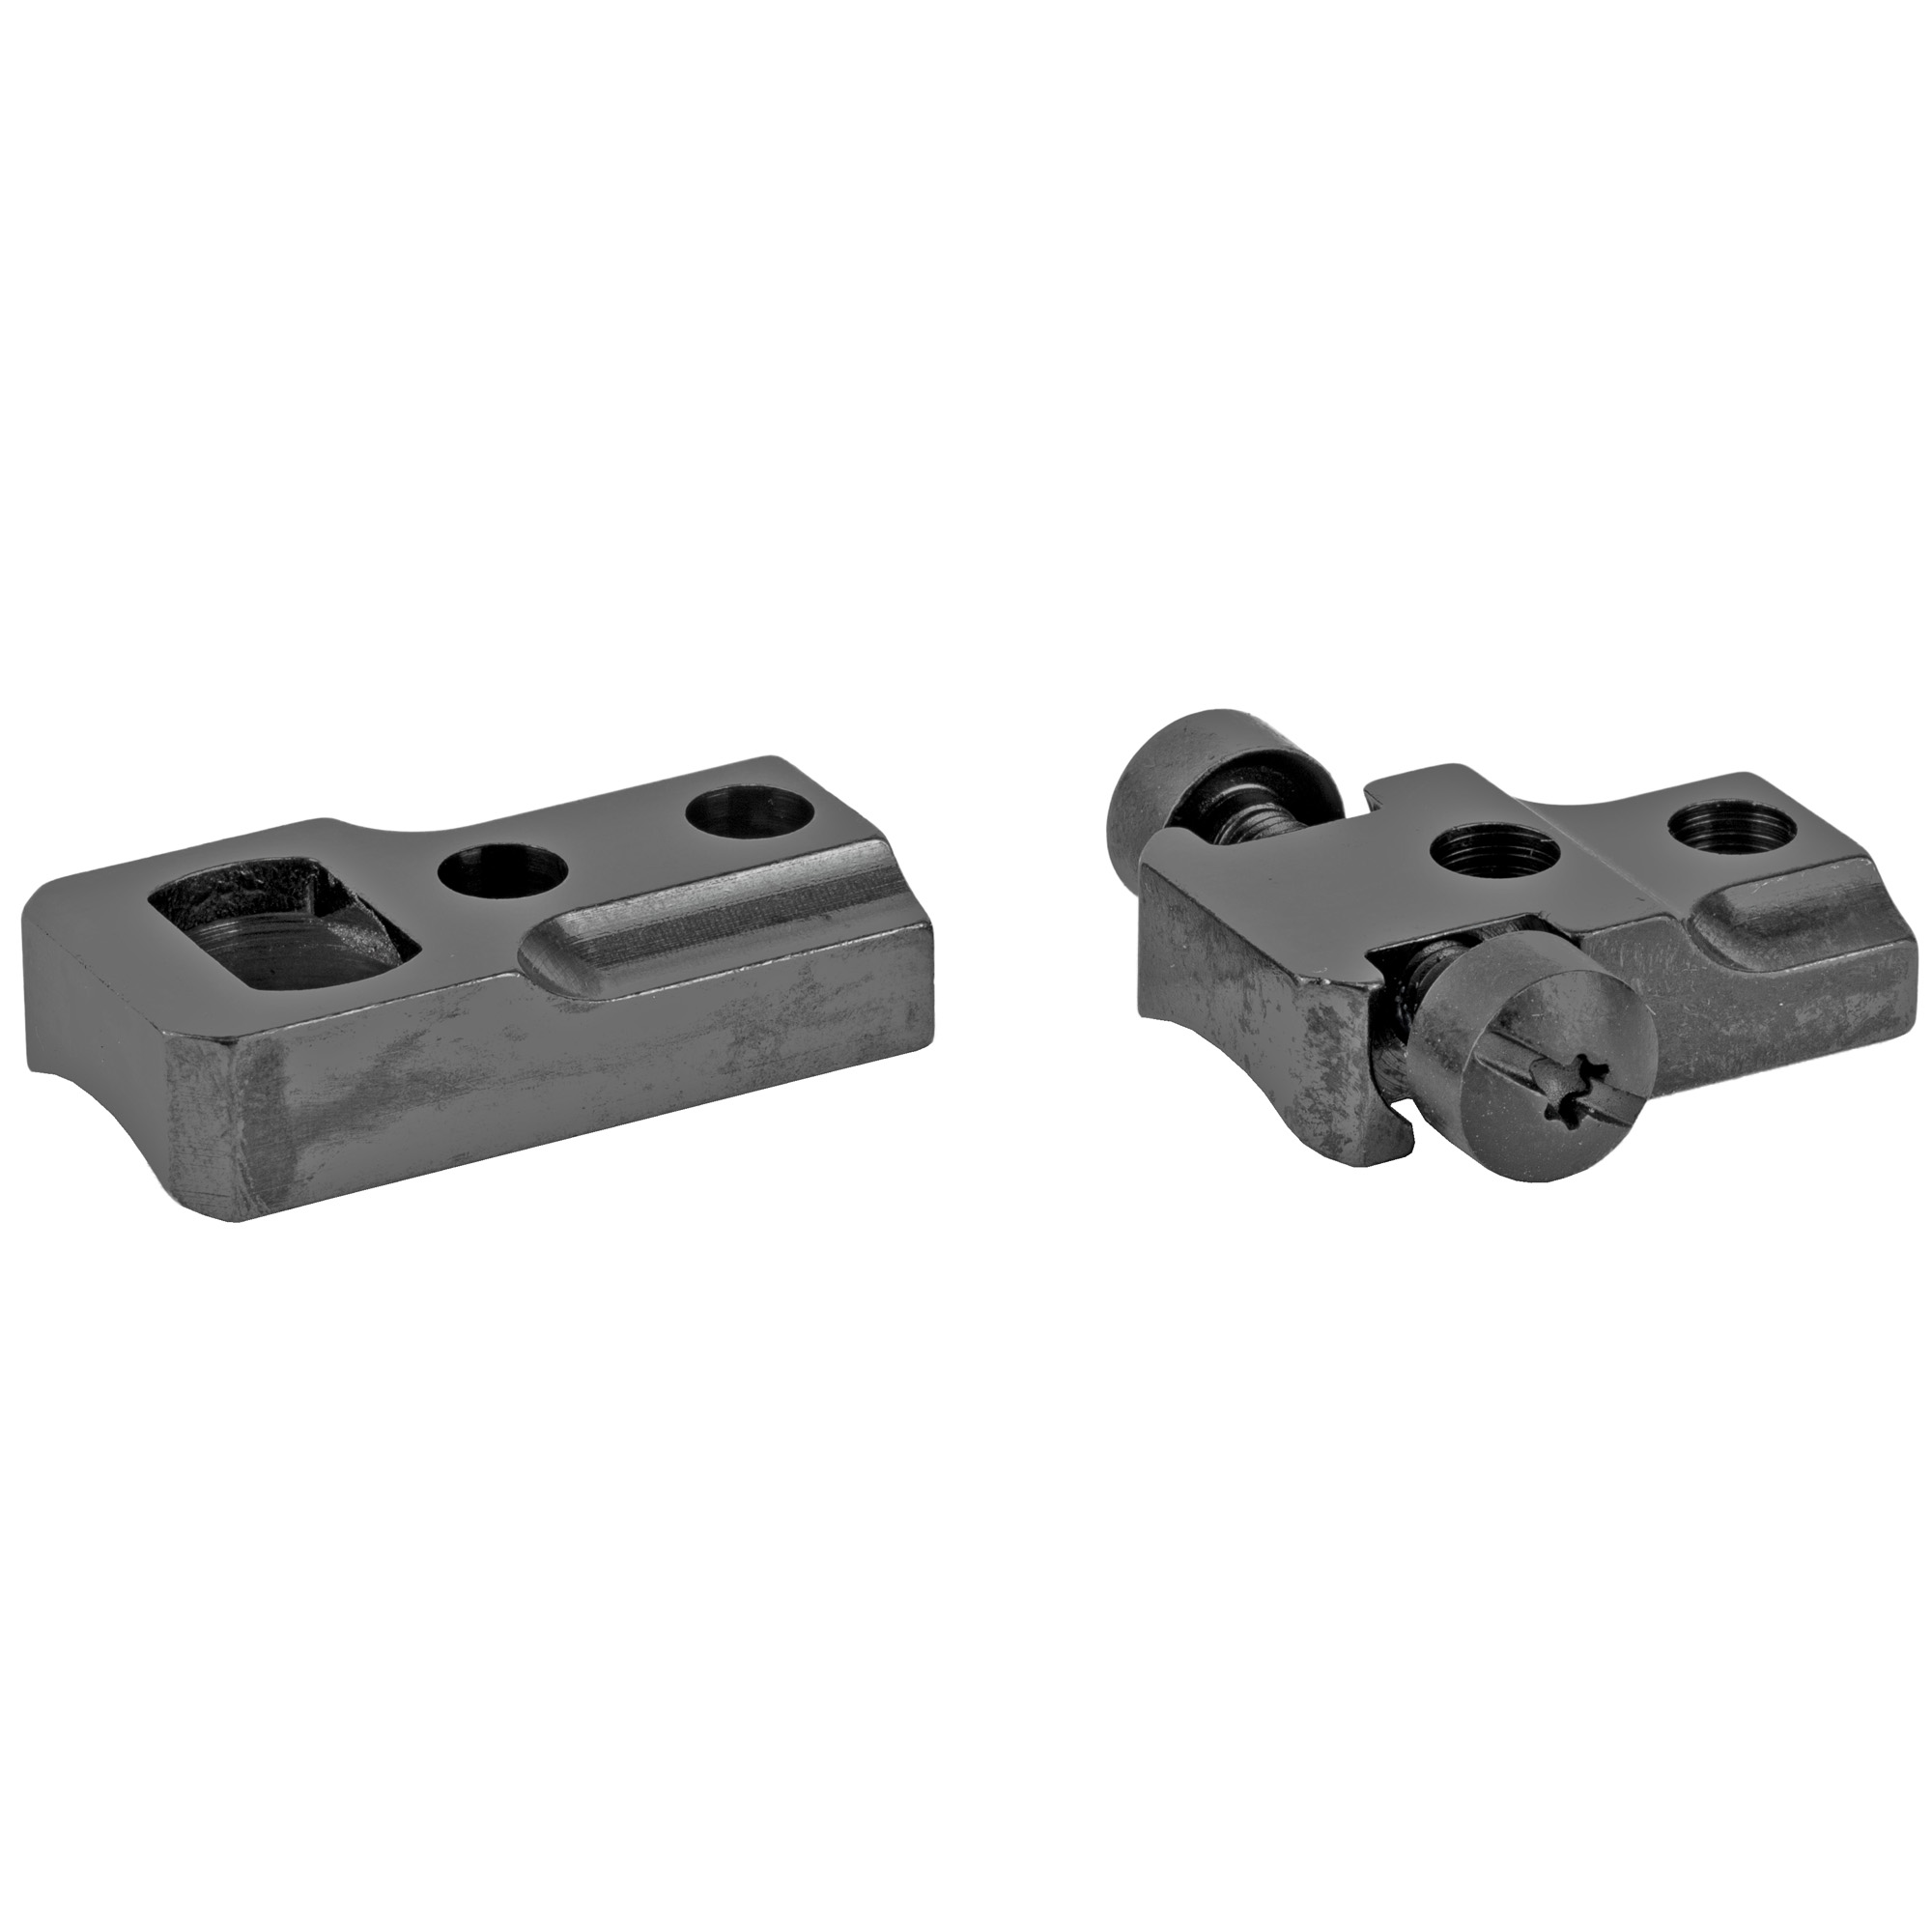 "The Leupold steel standard bases and rings are the most versatile of any mounting system they offer. The rear ring is secured by windage adjustment screws"" allowing the scope's internal adjustments to be reserved for precise sight-in. Additionally"" shims can be used for gross elevation adjustment"" reserving the scope's elevation adjustment for bullet drop compensation dial applications."